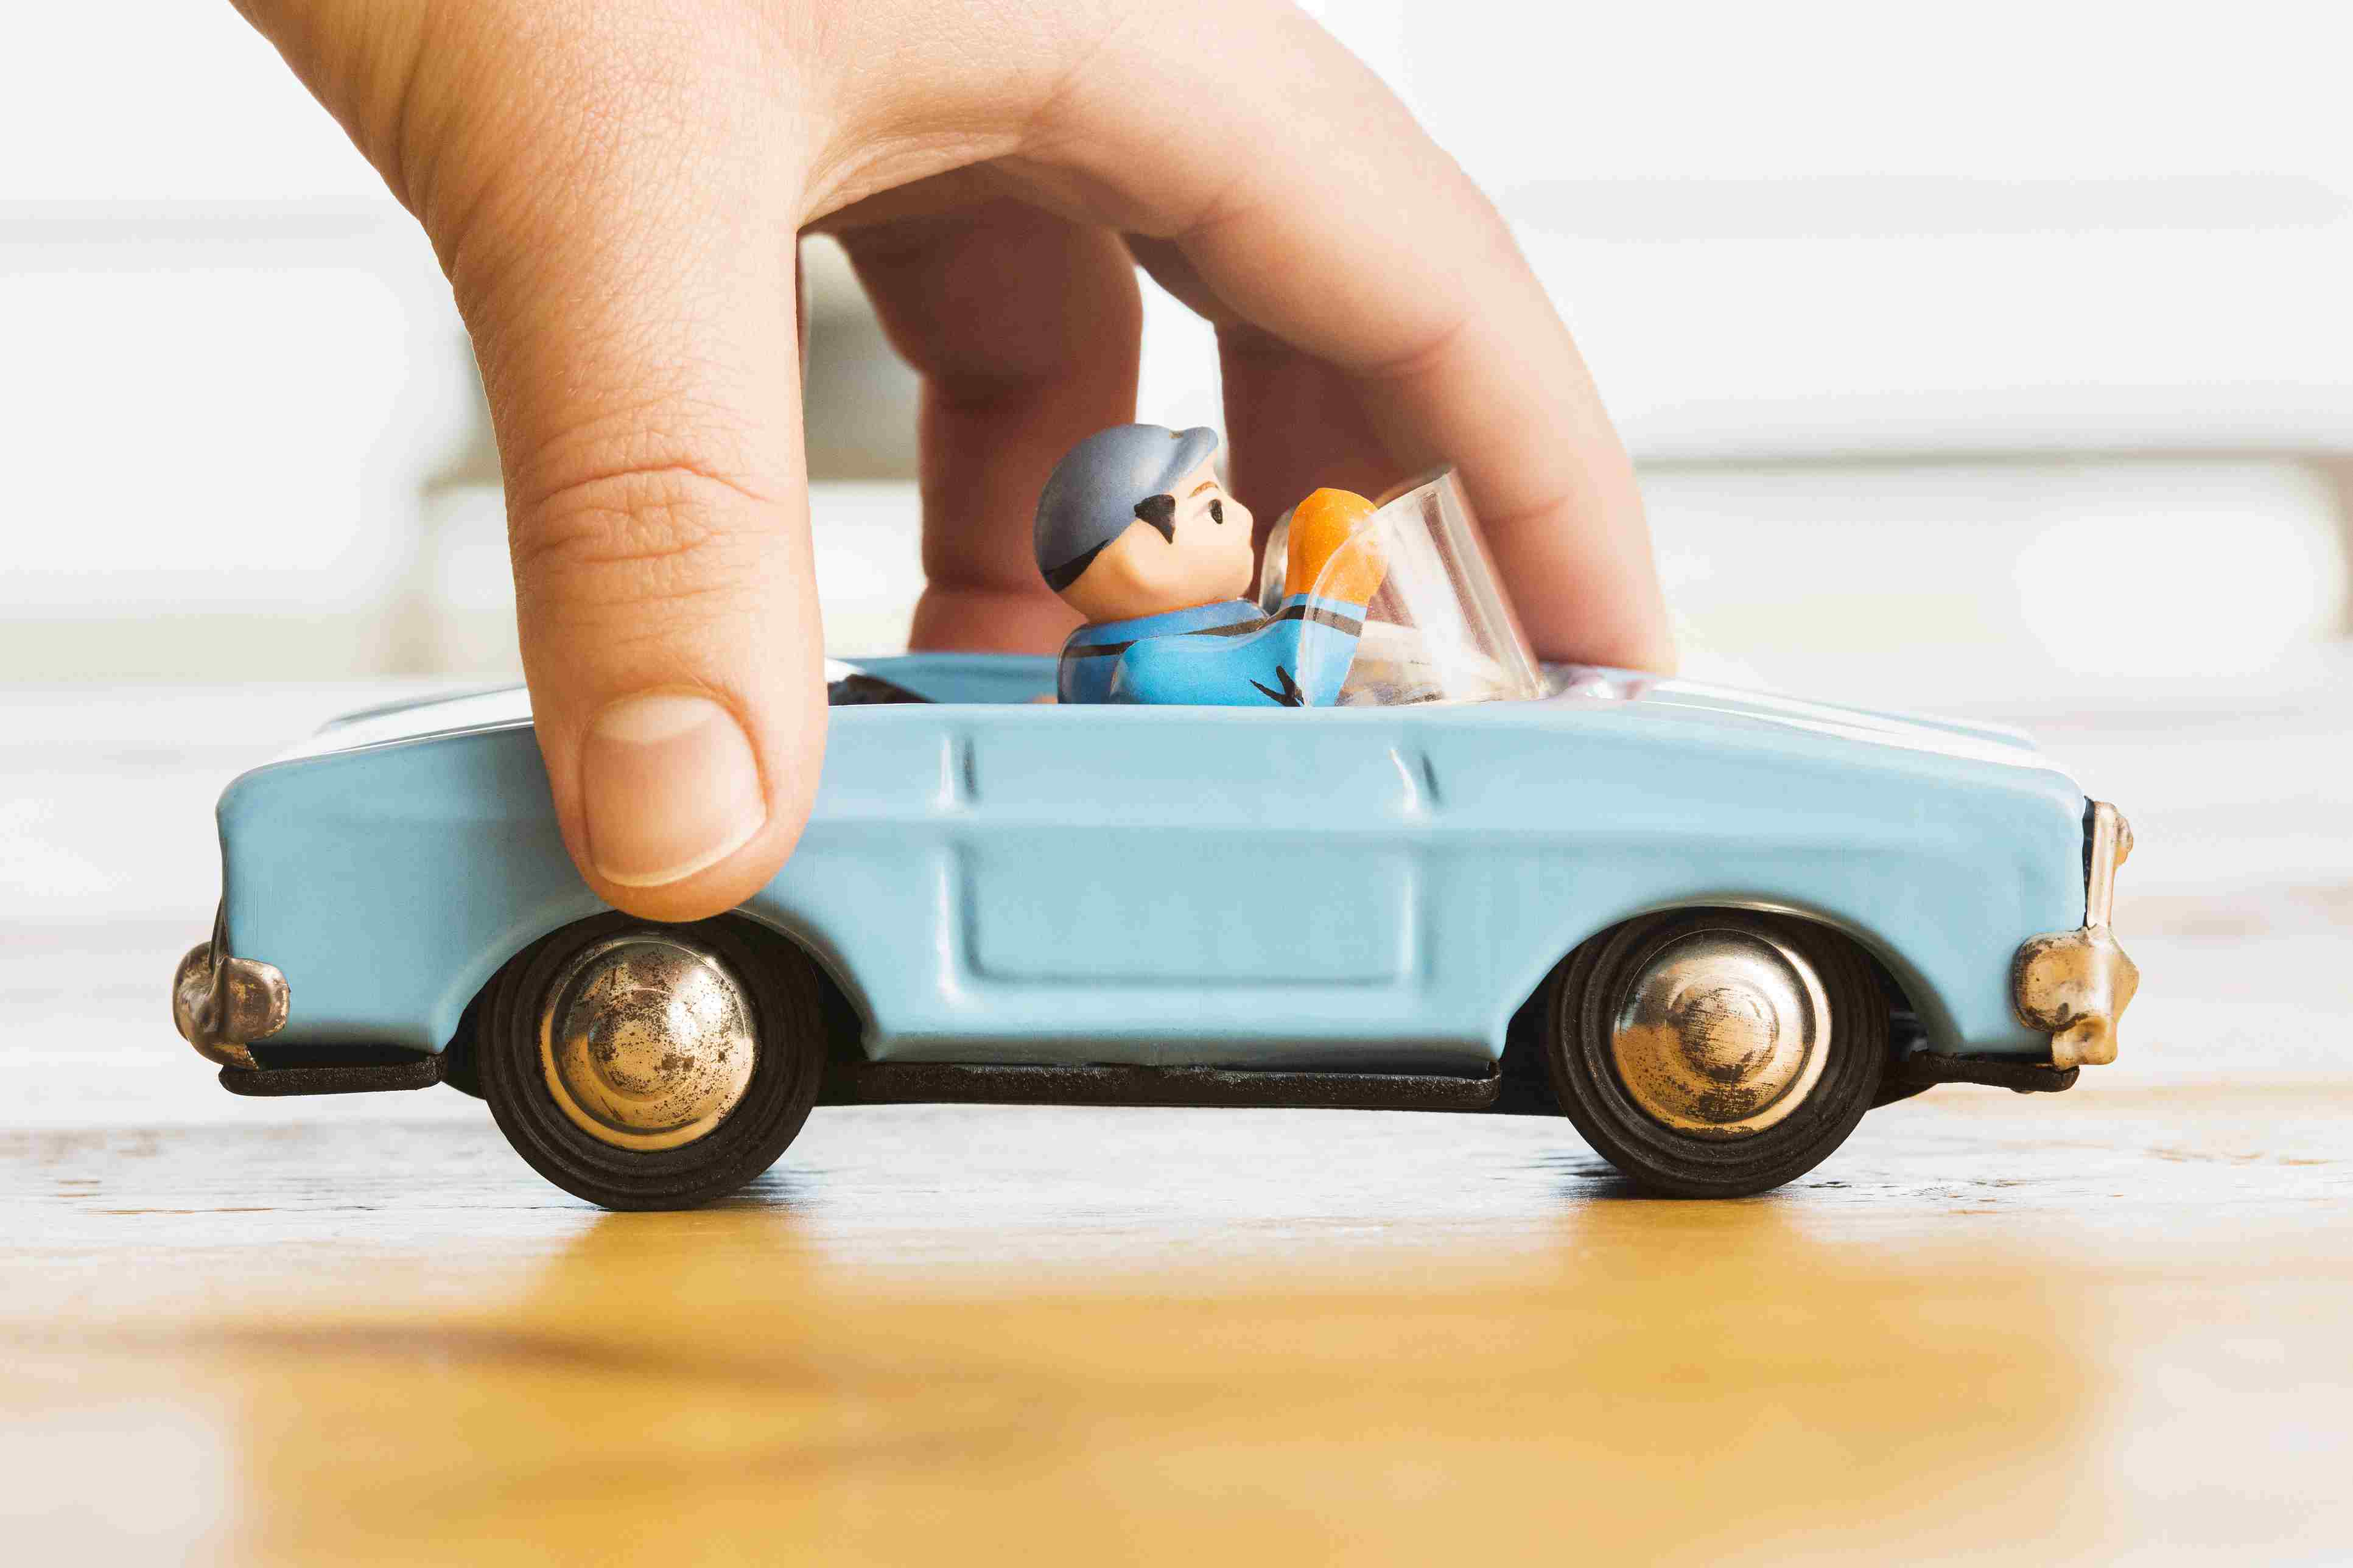 Hand pushing vintage blue toy convertible car